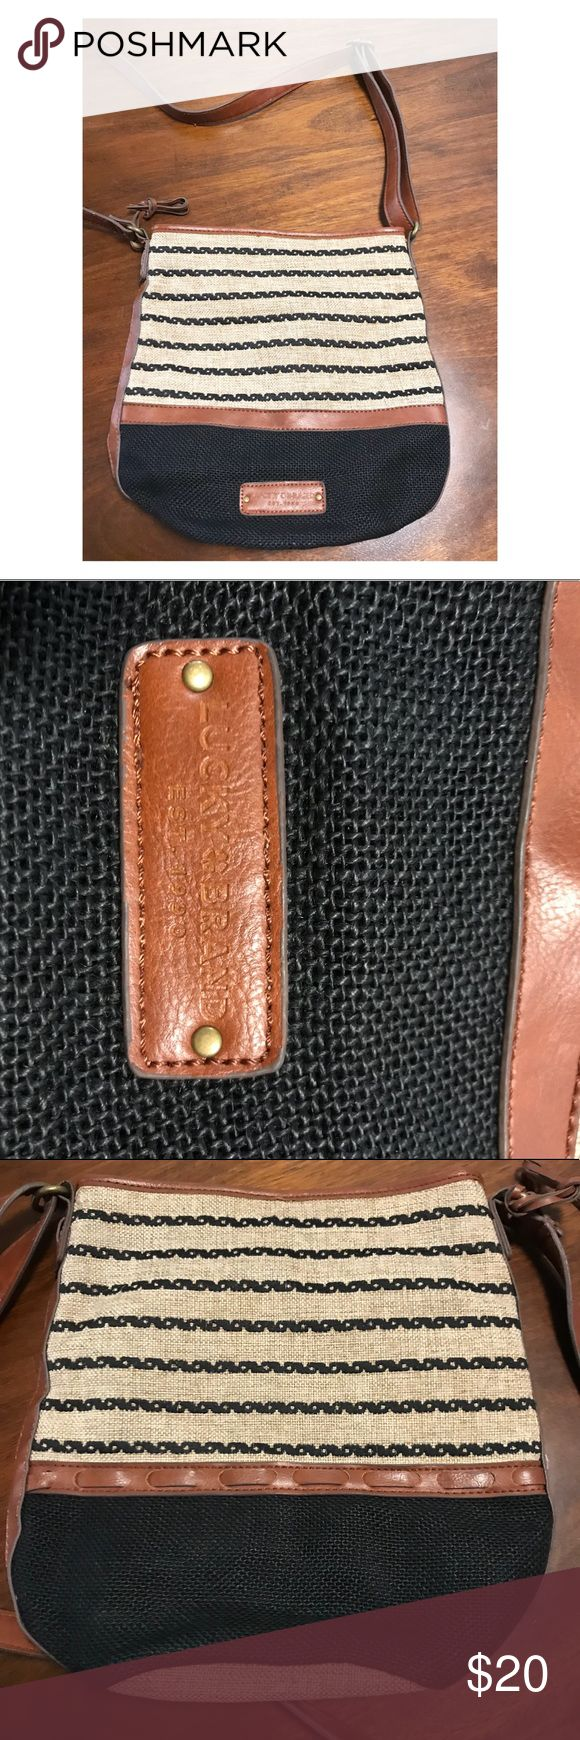 ☘️Lucky Brand Purse ☘️ Lucky Brand Purse •perfect condition, only used once  •zippers and pockets  •adjustable side strap Lucky Brand Bags